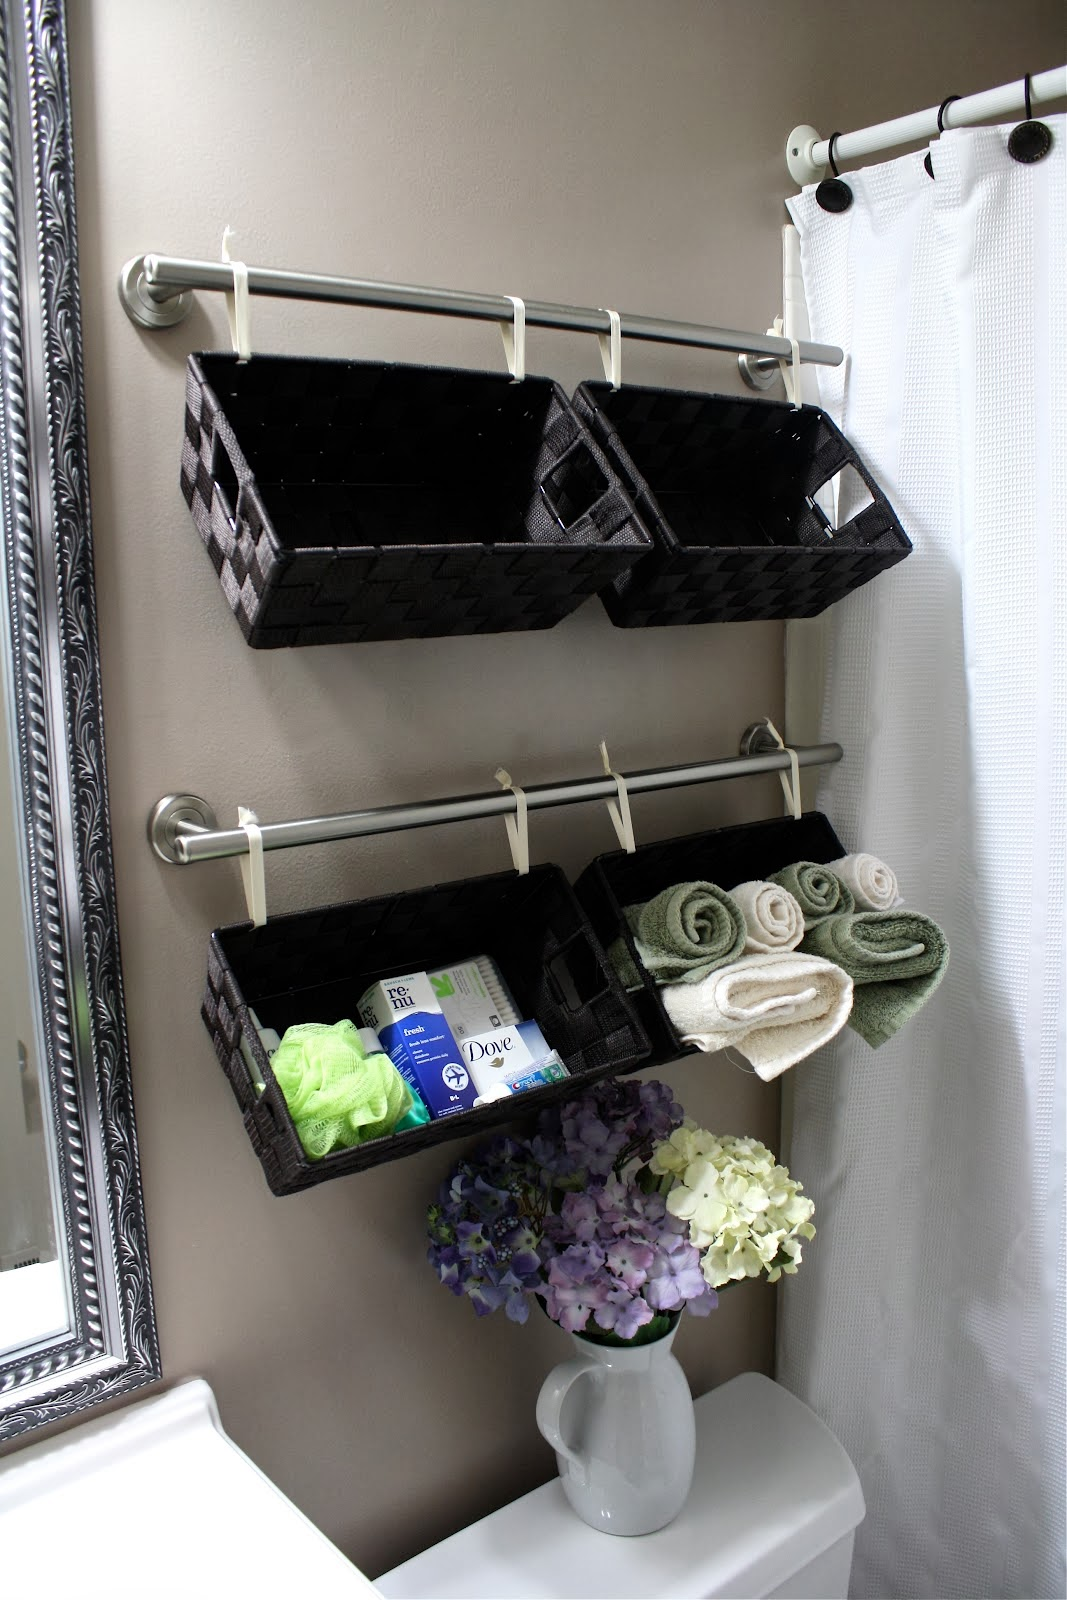 DIY Wall Full of Baskets Bathroom Storage Idea